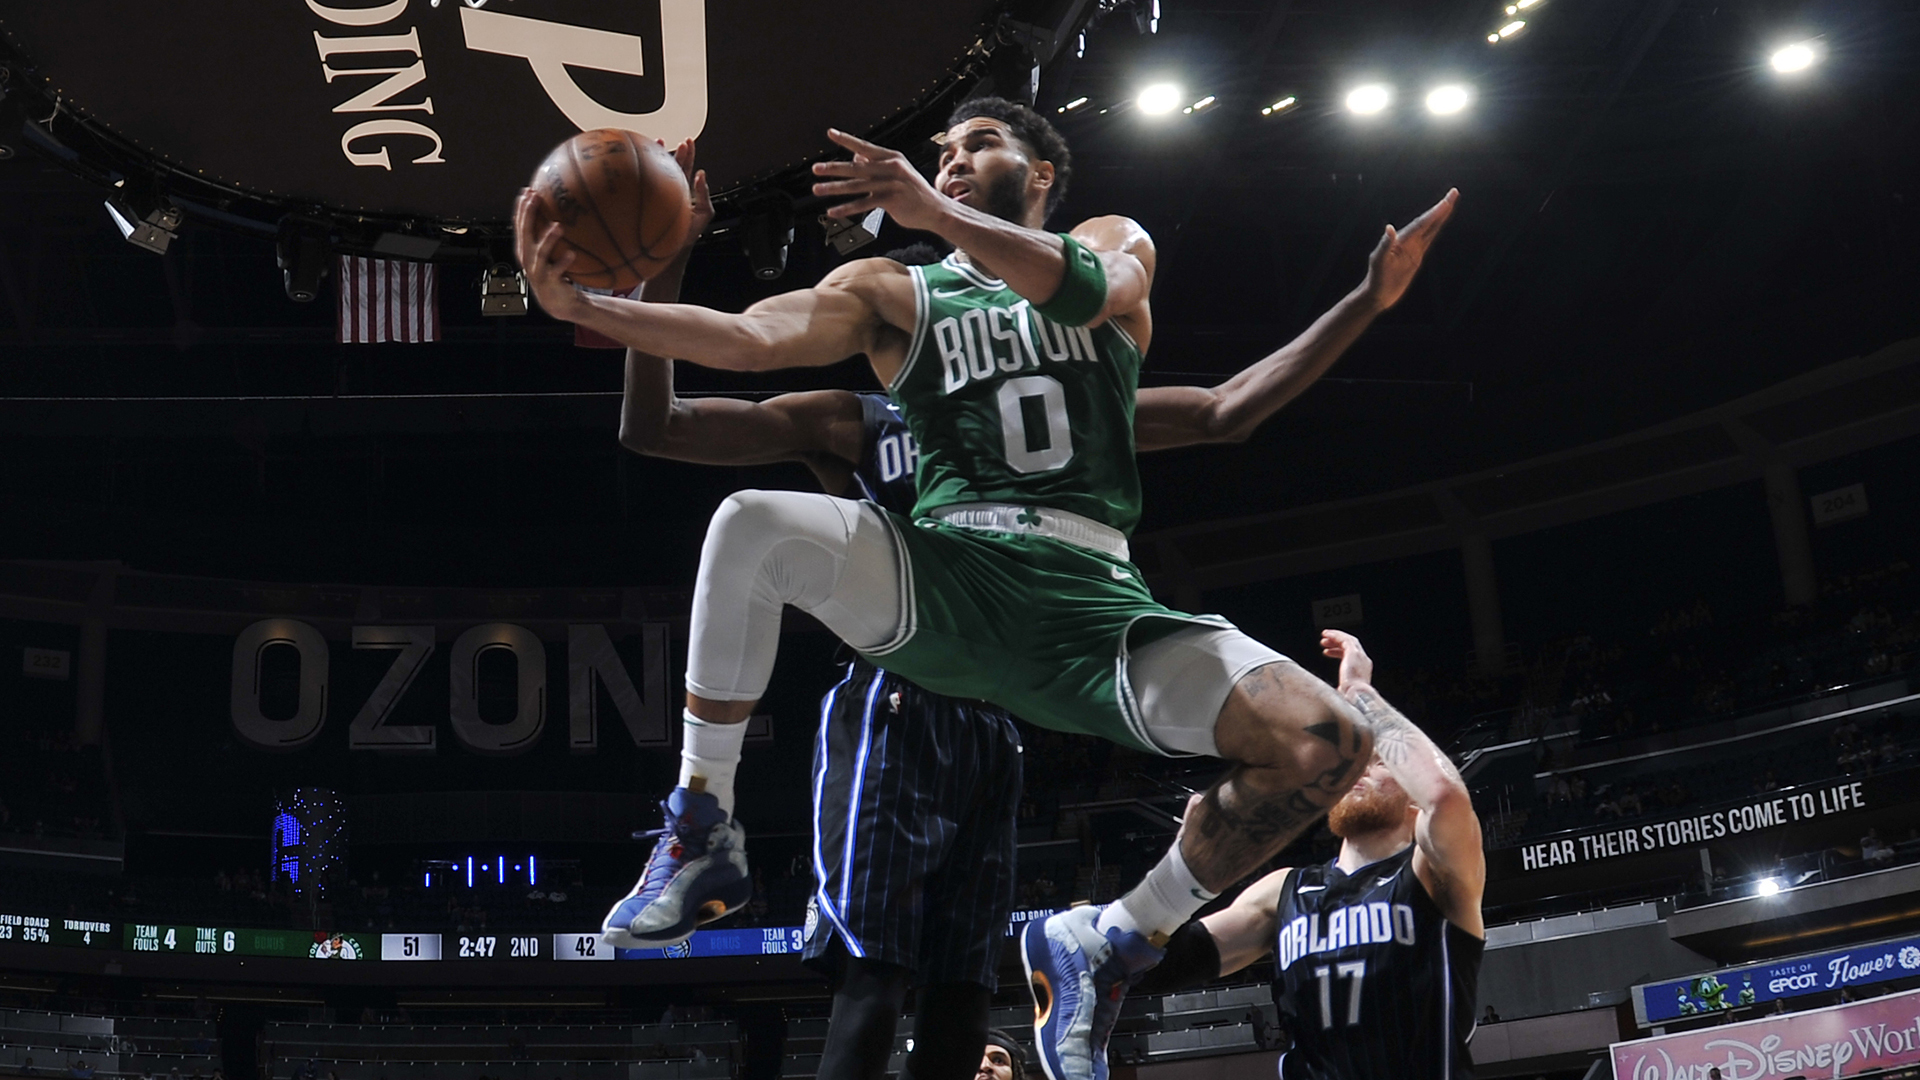 Celtics cruise past Magic, climb to No. 6 seed in East